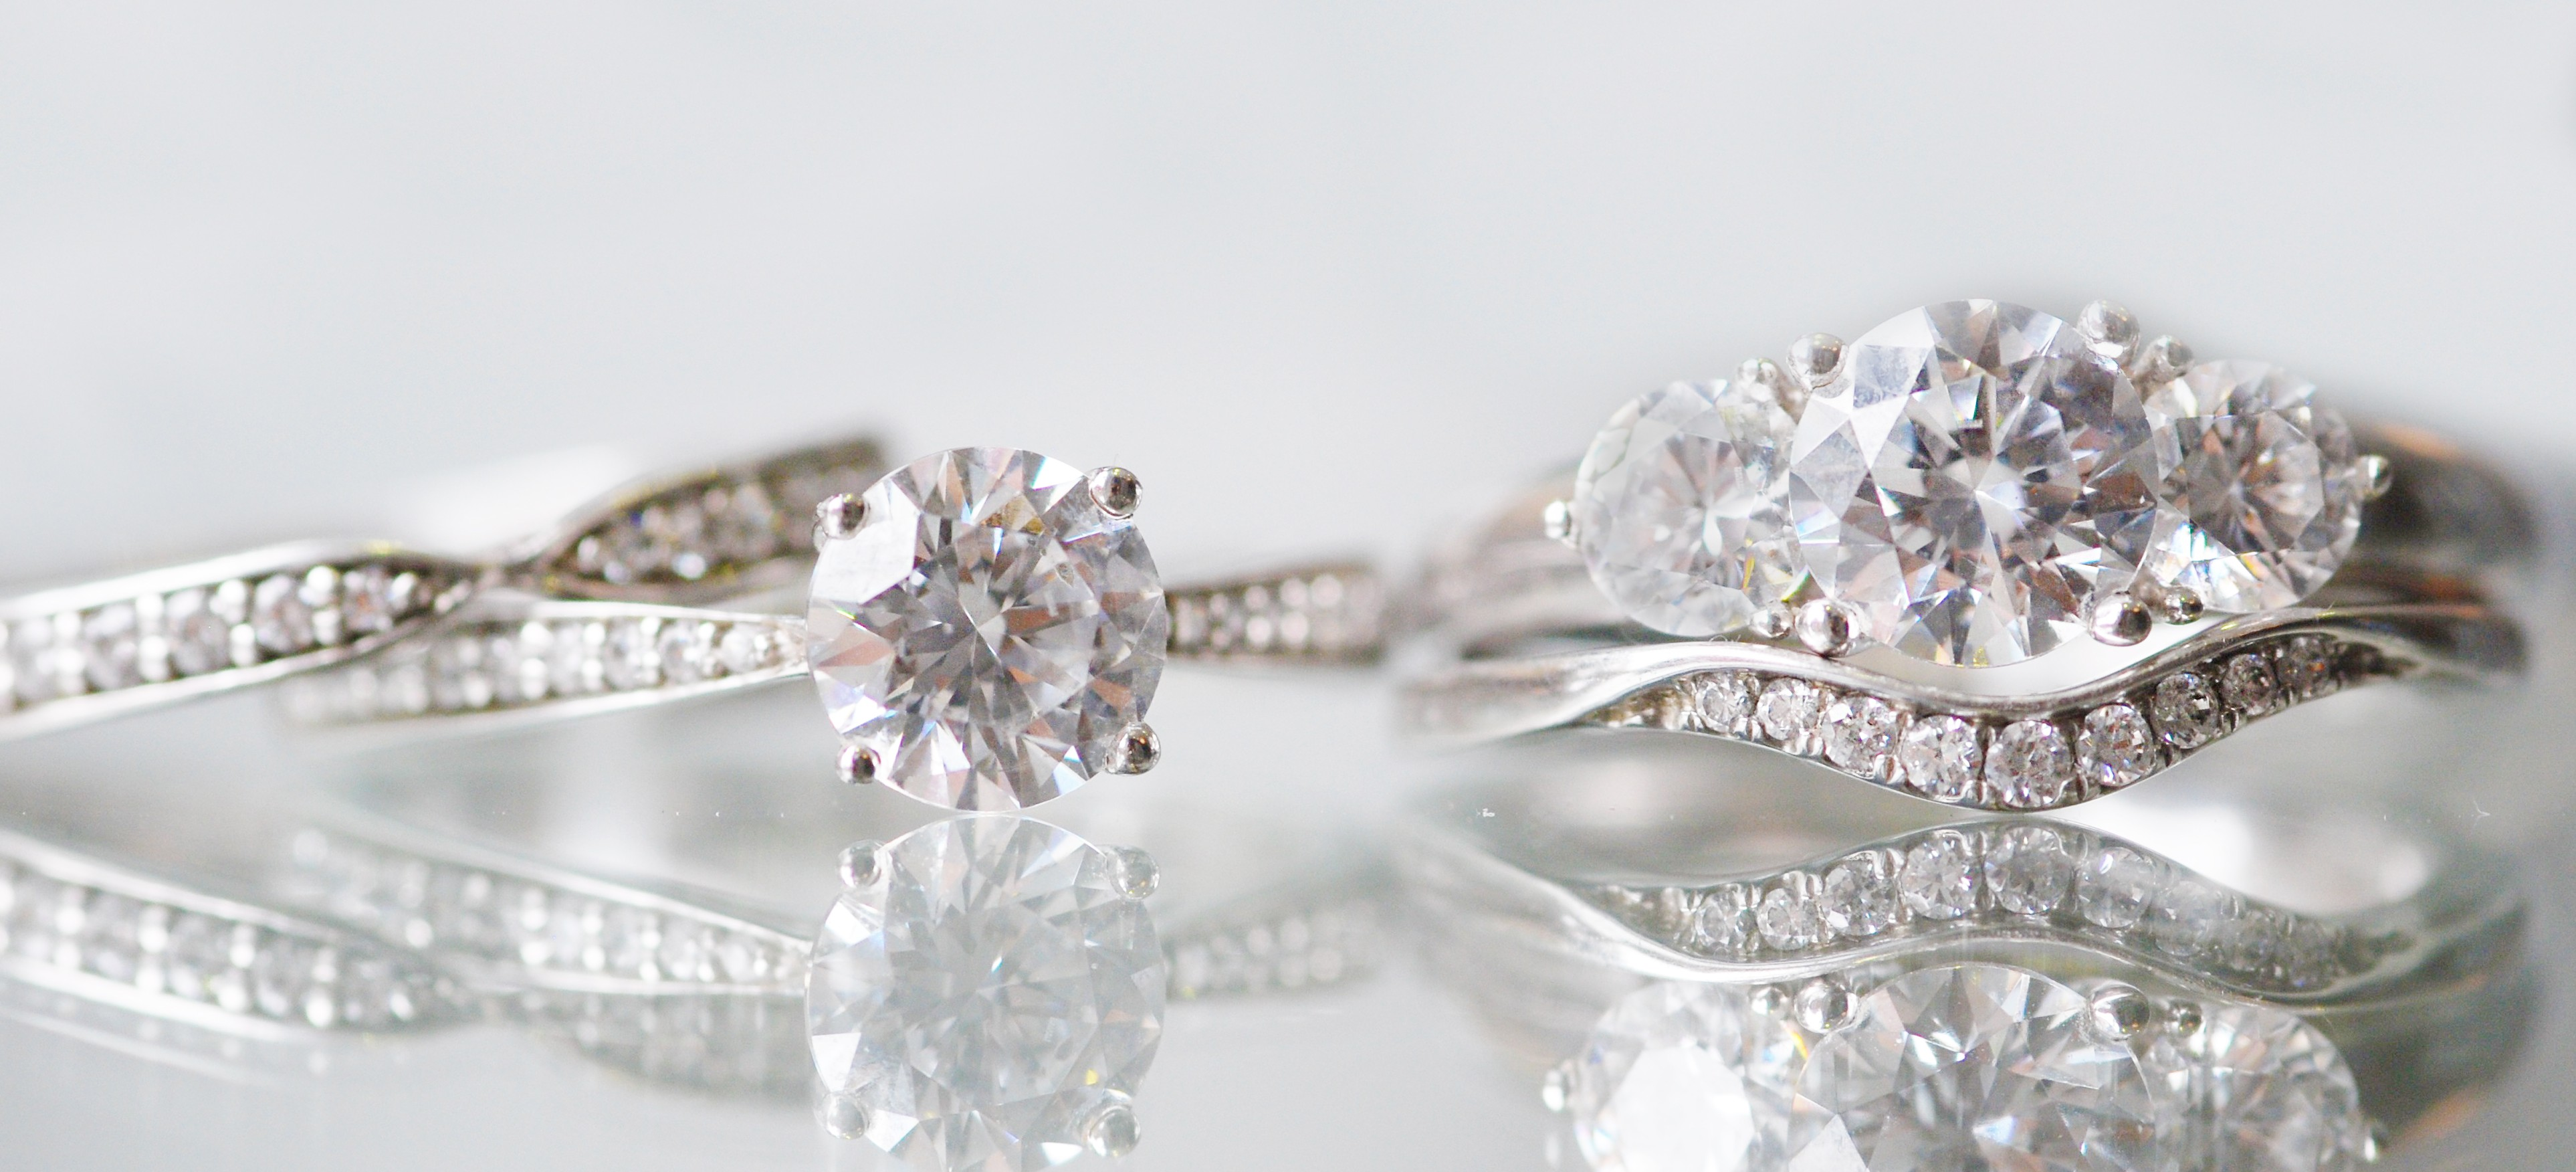 How Much Are Wedding Rings | How Much Are Wedding Rings Aurus Blog